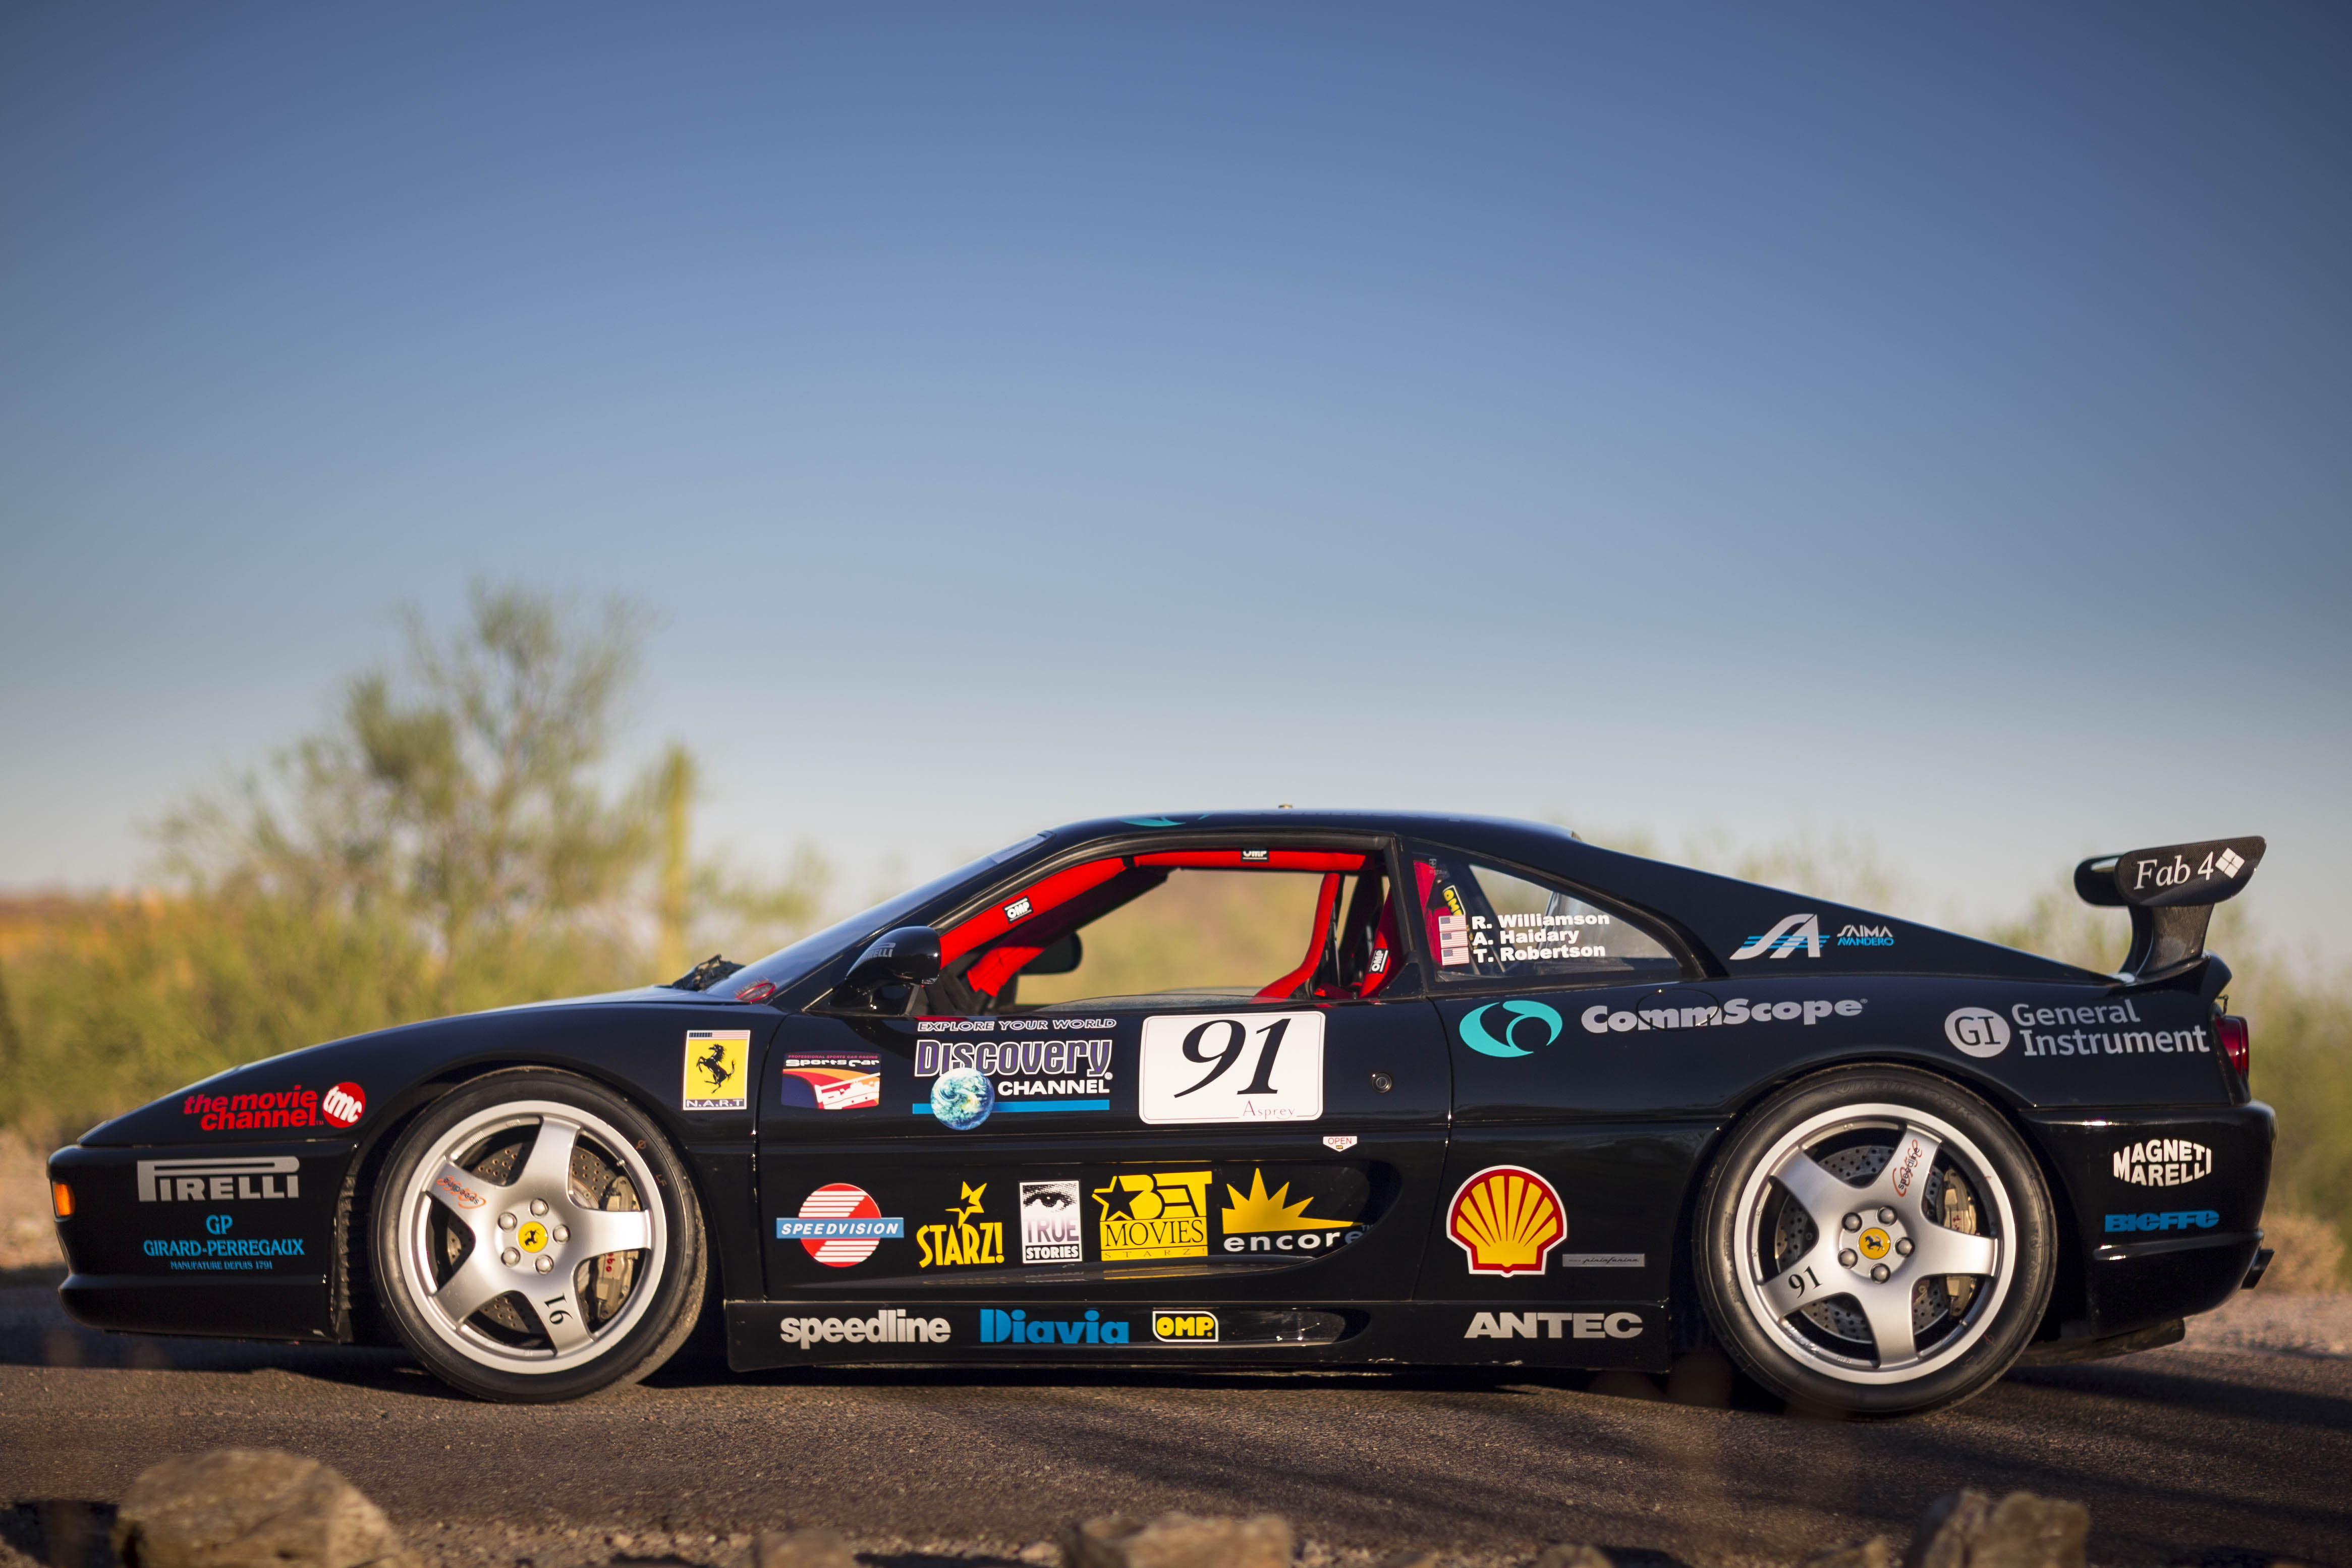 See More Details, Pictures And Talk About The Ferrari HERE At The Challenge  Board